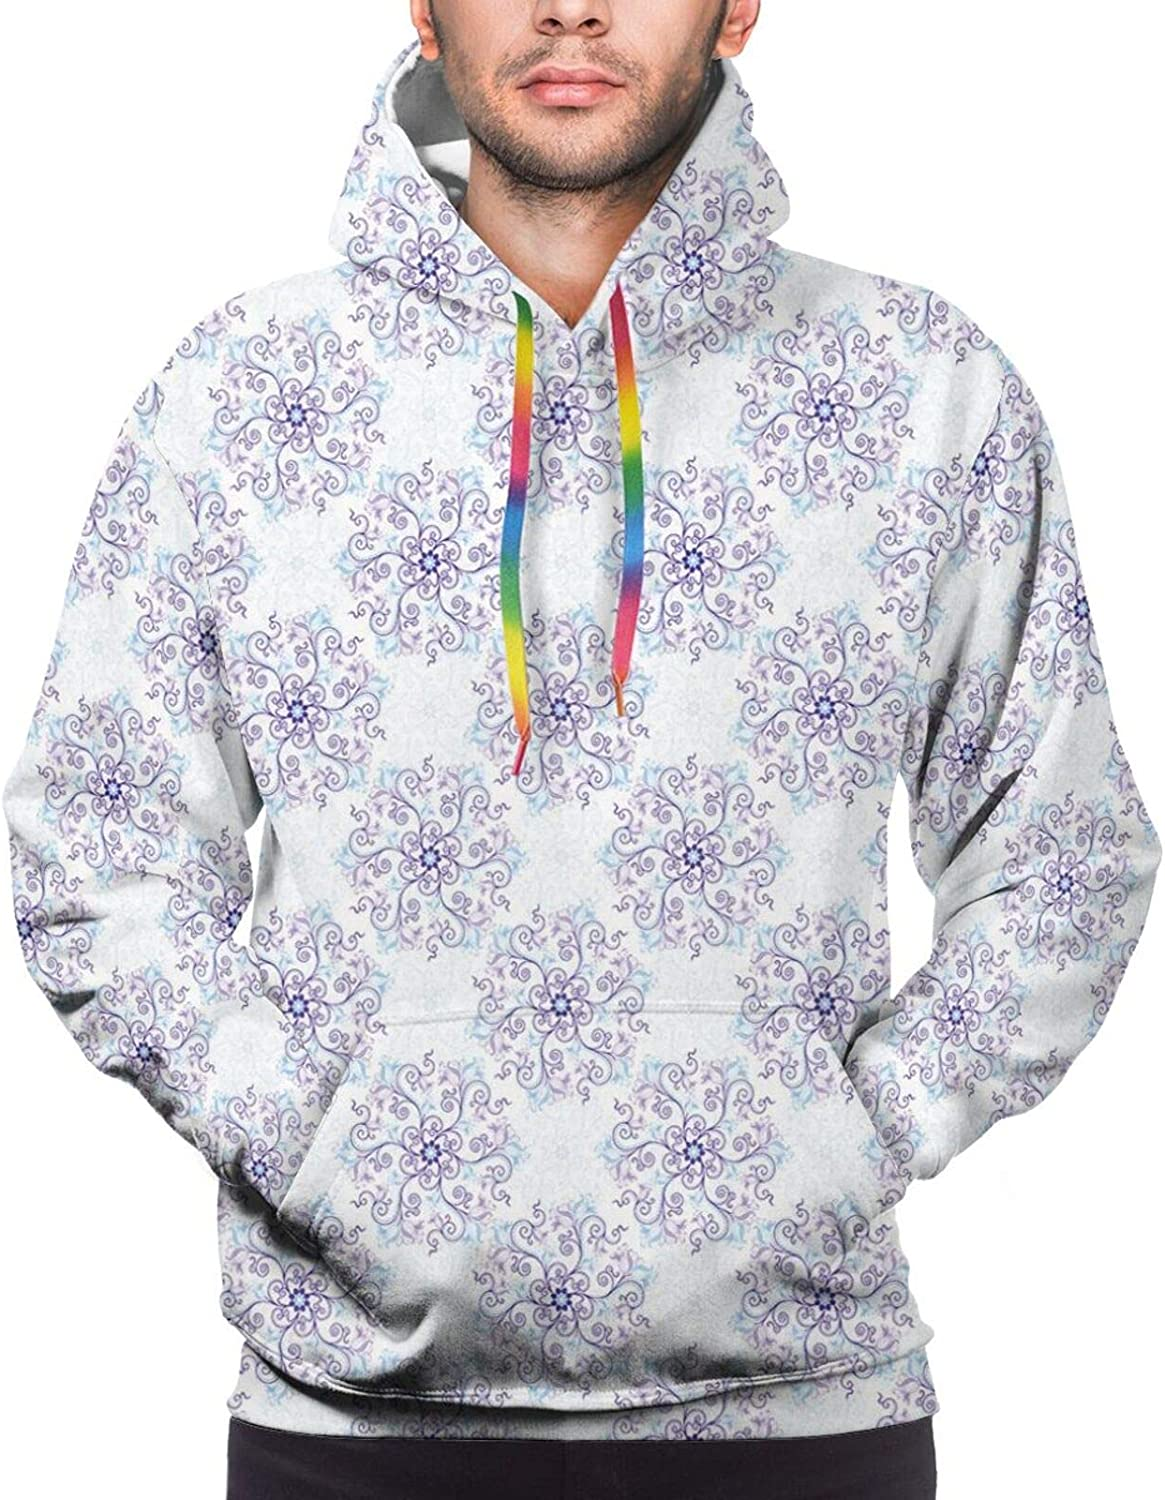 Men's Hoodies Sweatshirts,Floral Arrangement with Wildflowers and Leaves Abstract Valentines Day Inspired Art